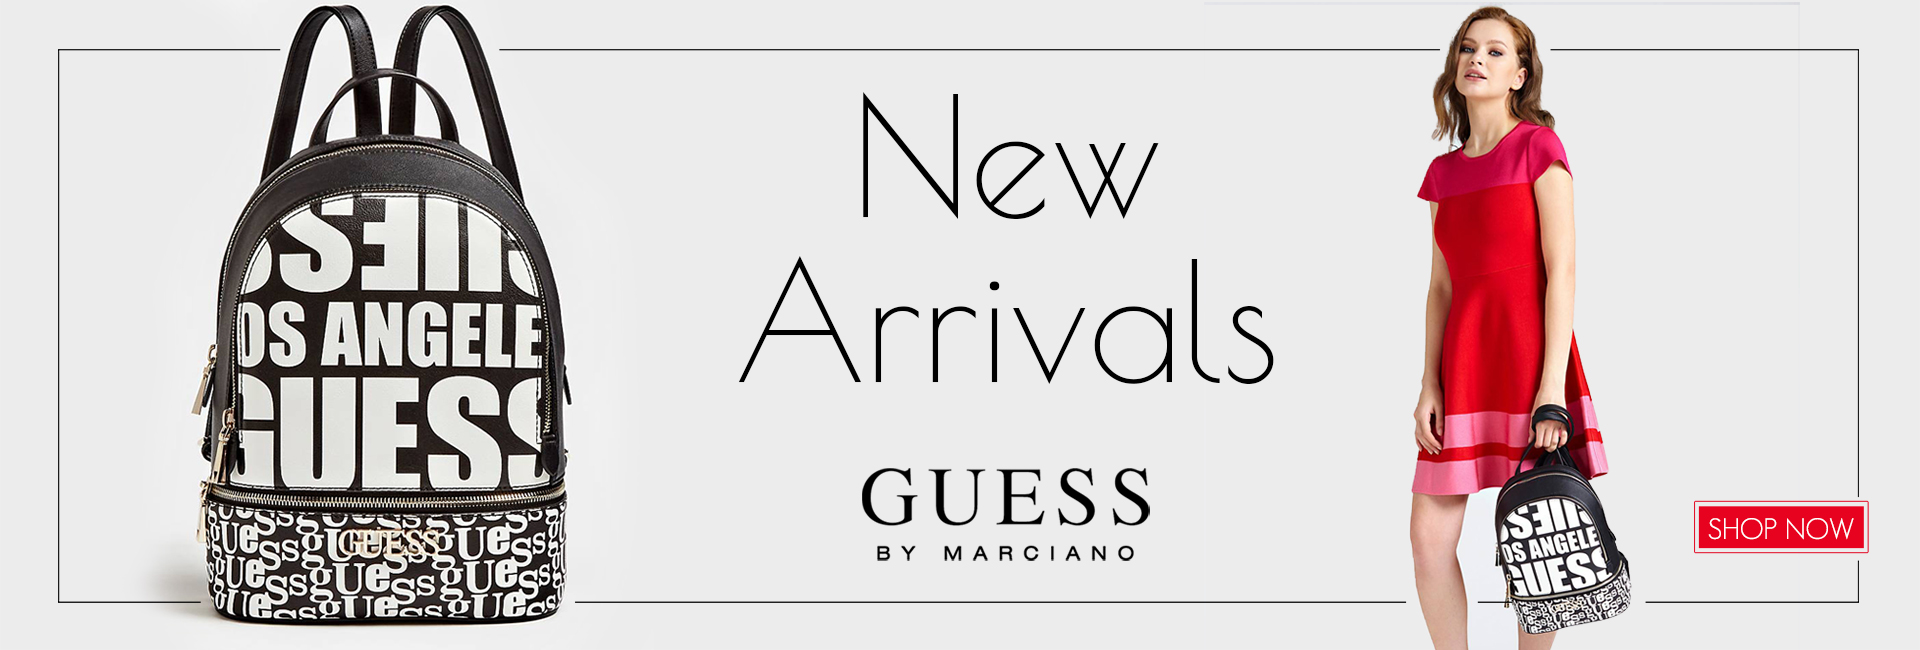 new guess